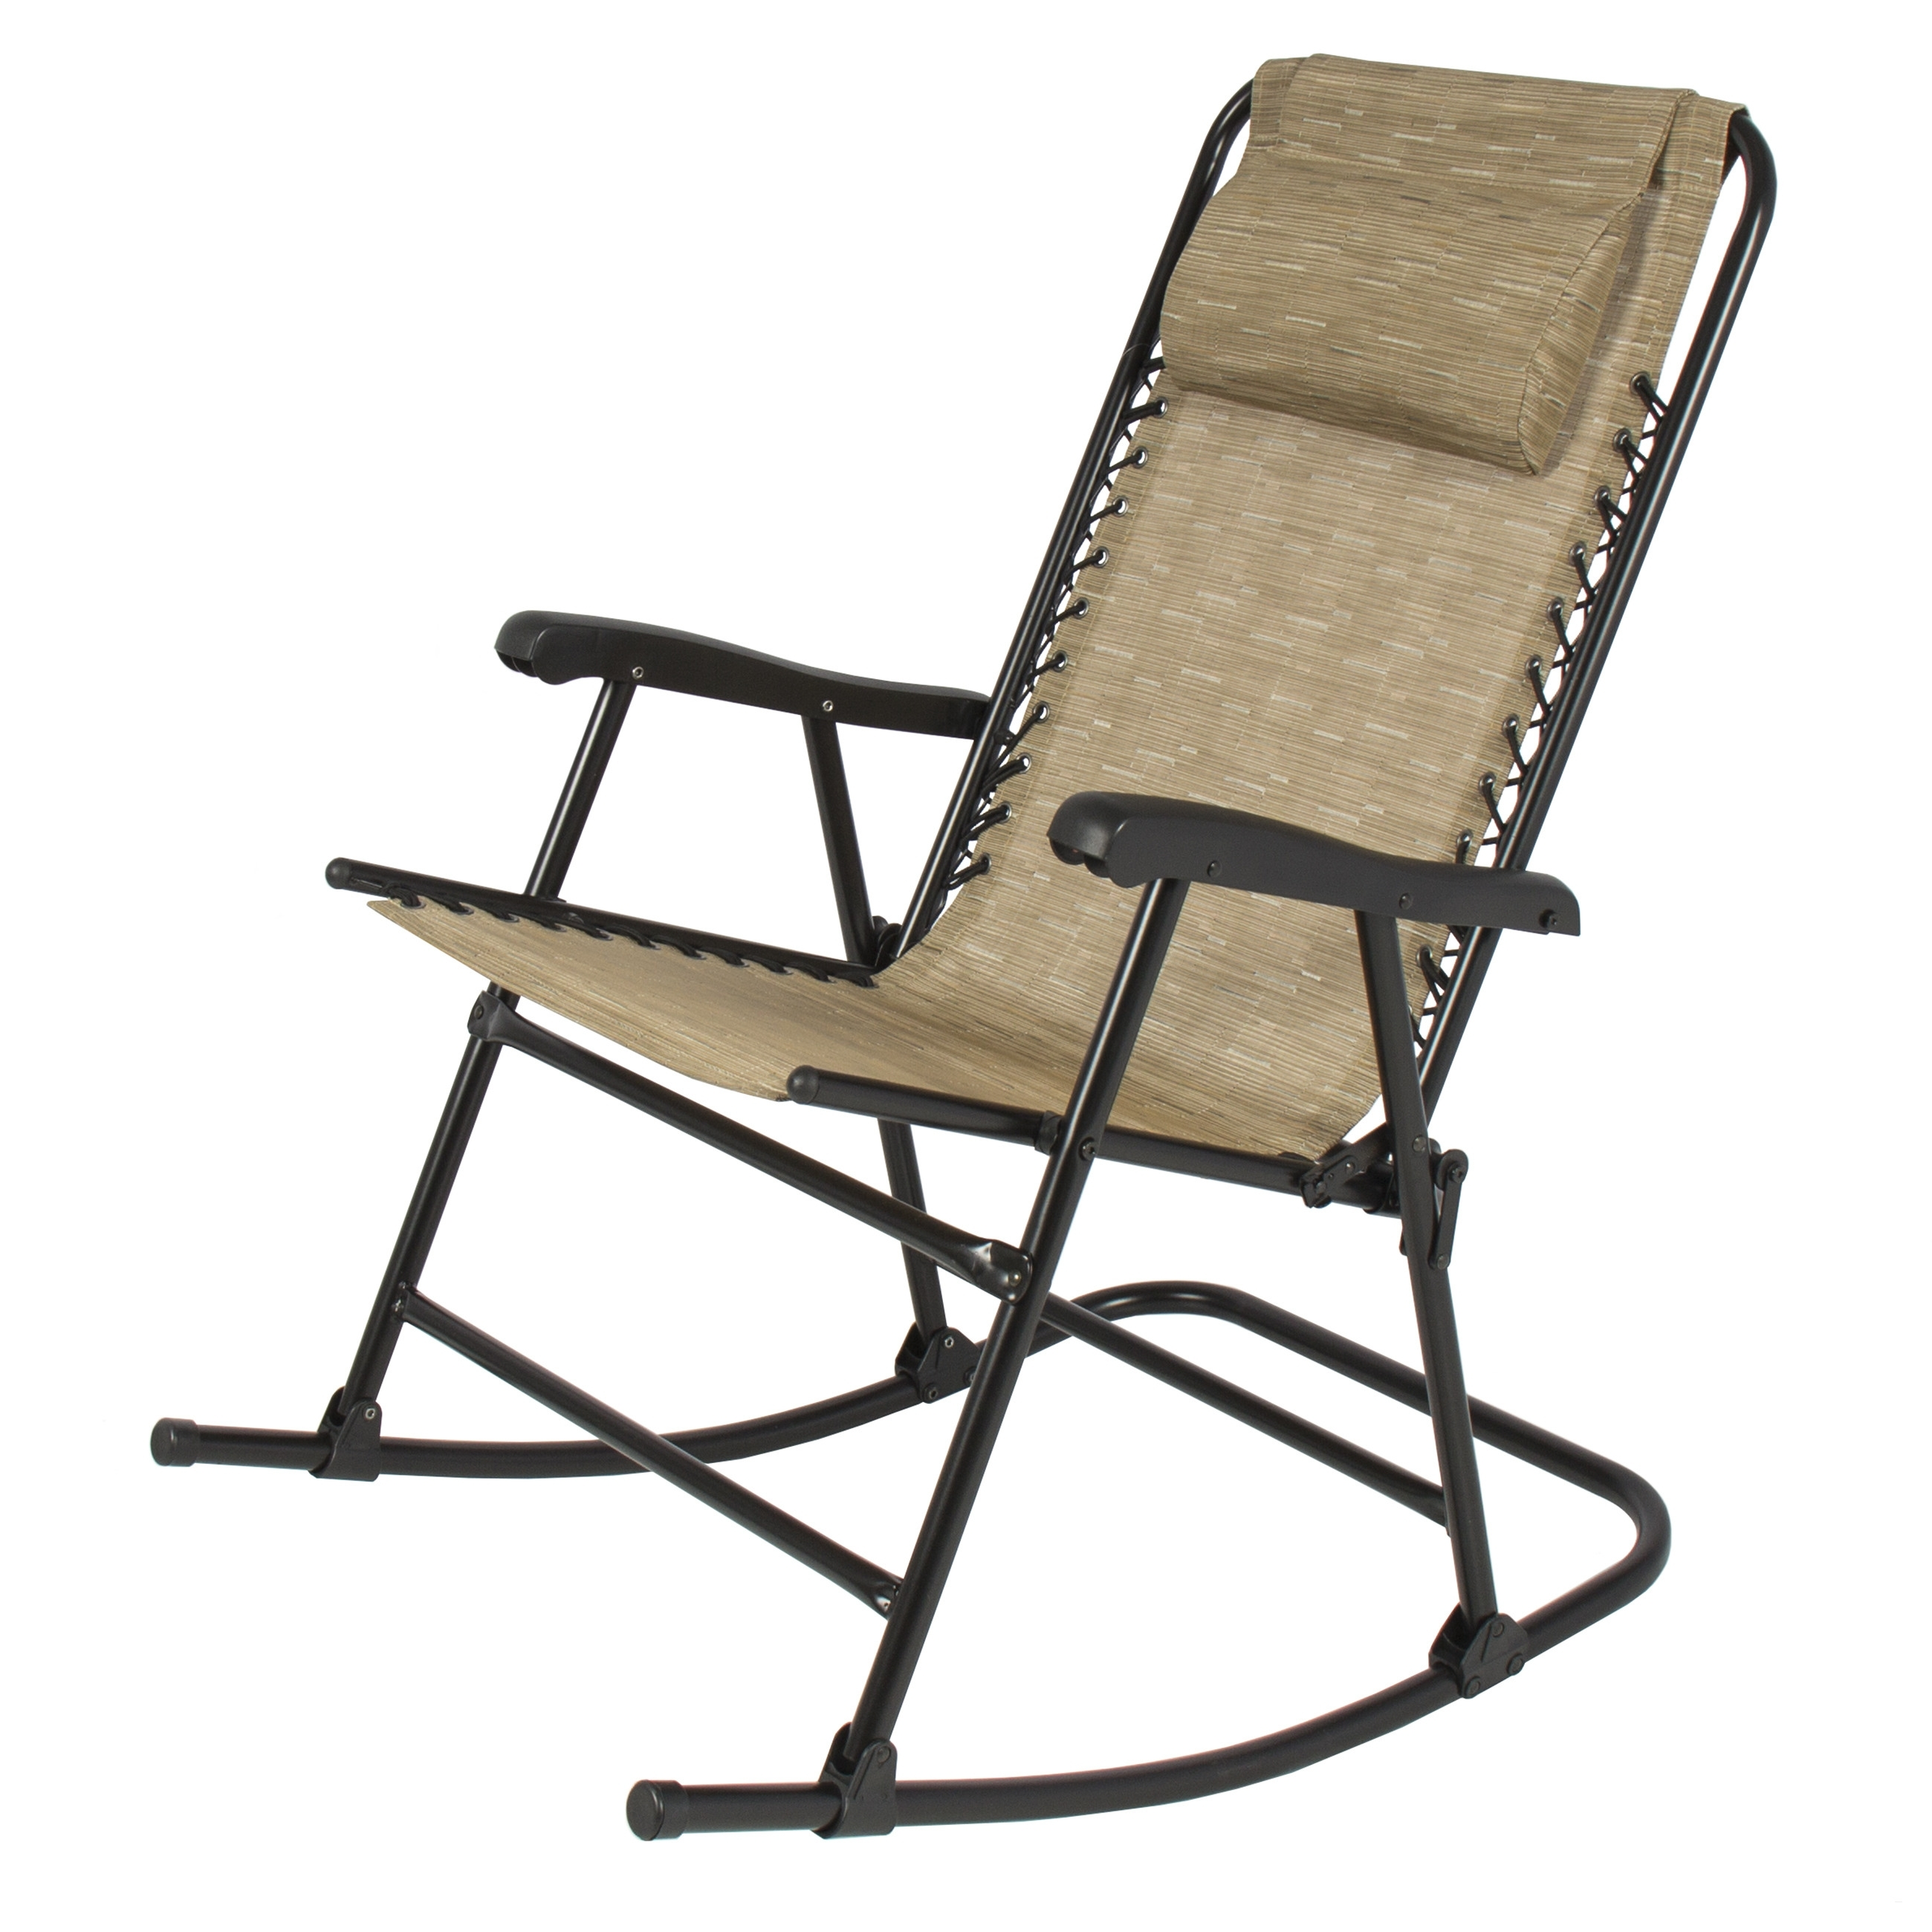 Widely Used Patio Rocking Chairs With Regard To Red Outdoor Rocking Chair – Nice Chair Lovely Patio Rocking Chairs (View 14 of 15)